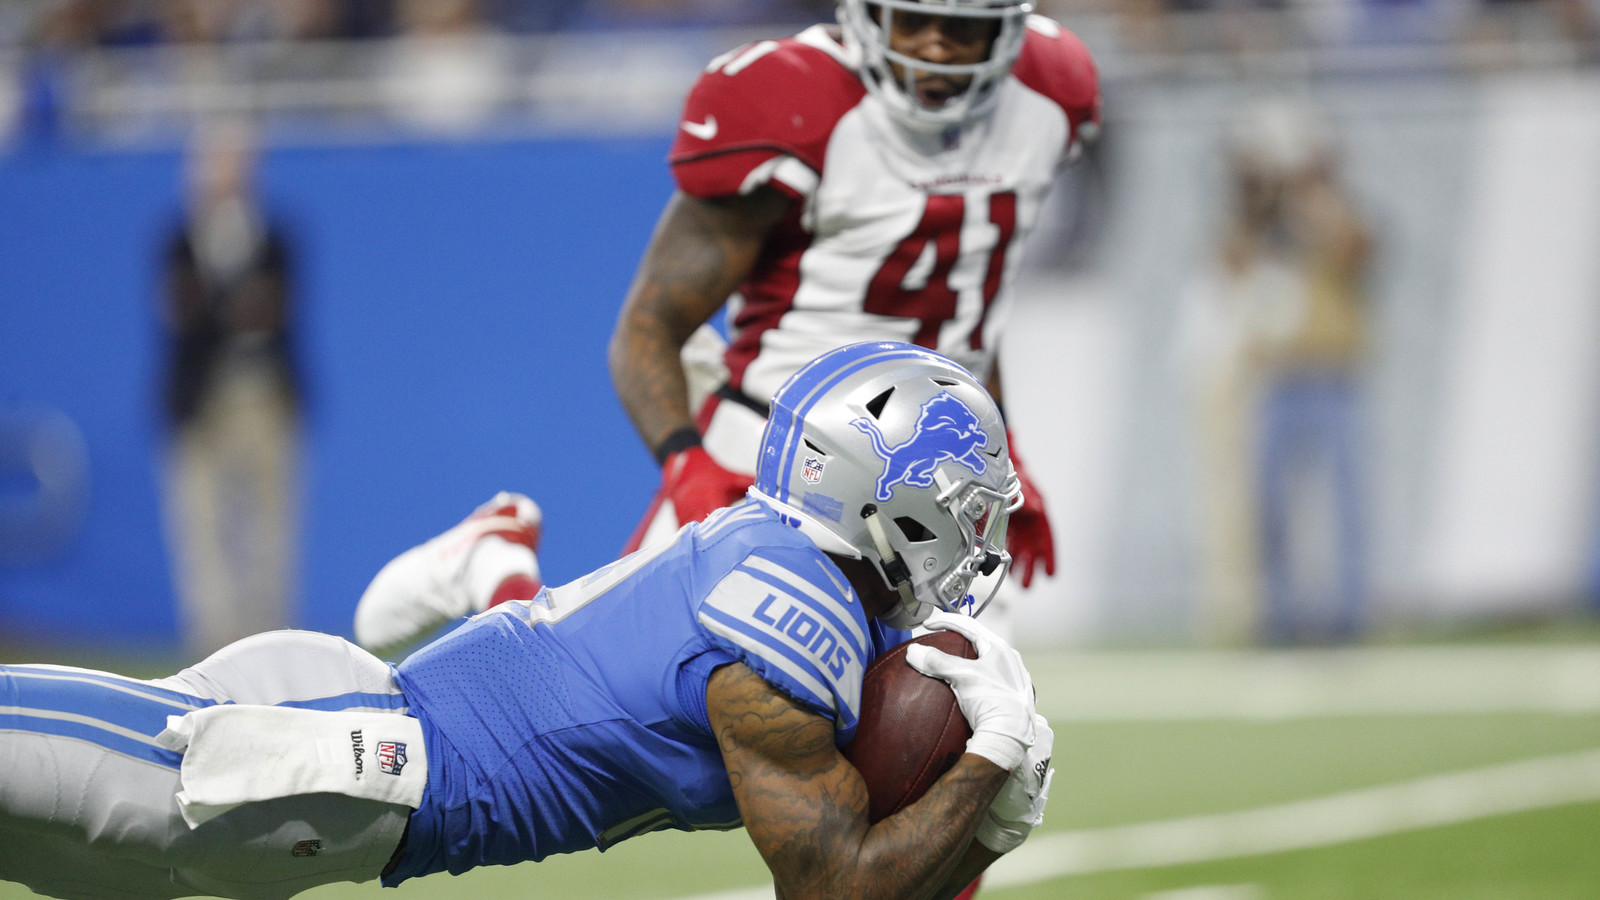 Detroit Lions: Matthew Stafford's 4 TDs key rally, win over Arizona Cardinals